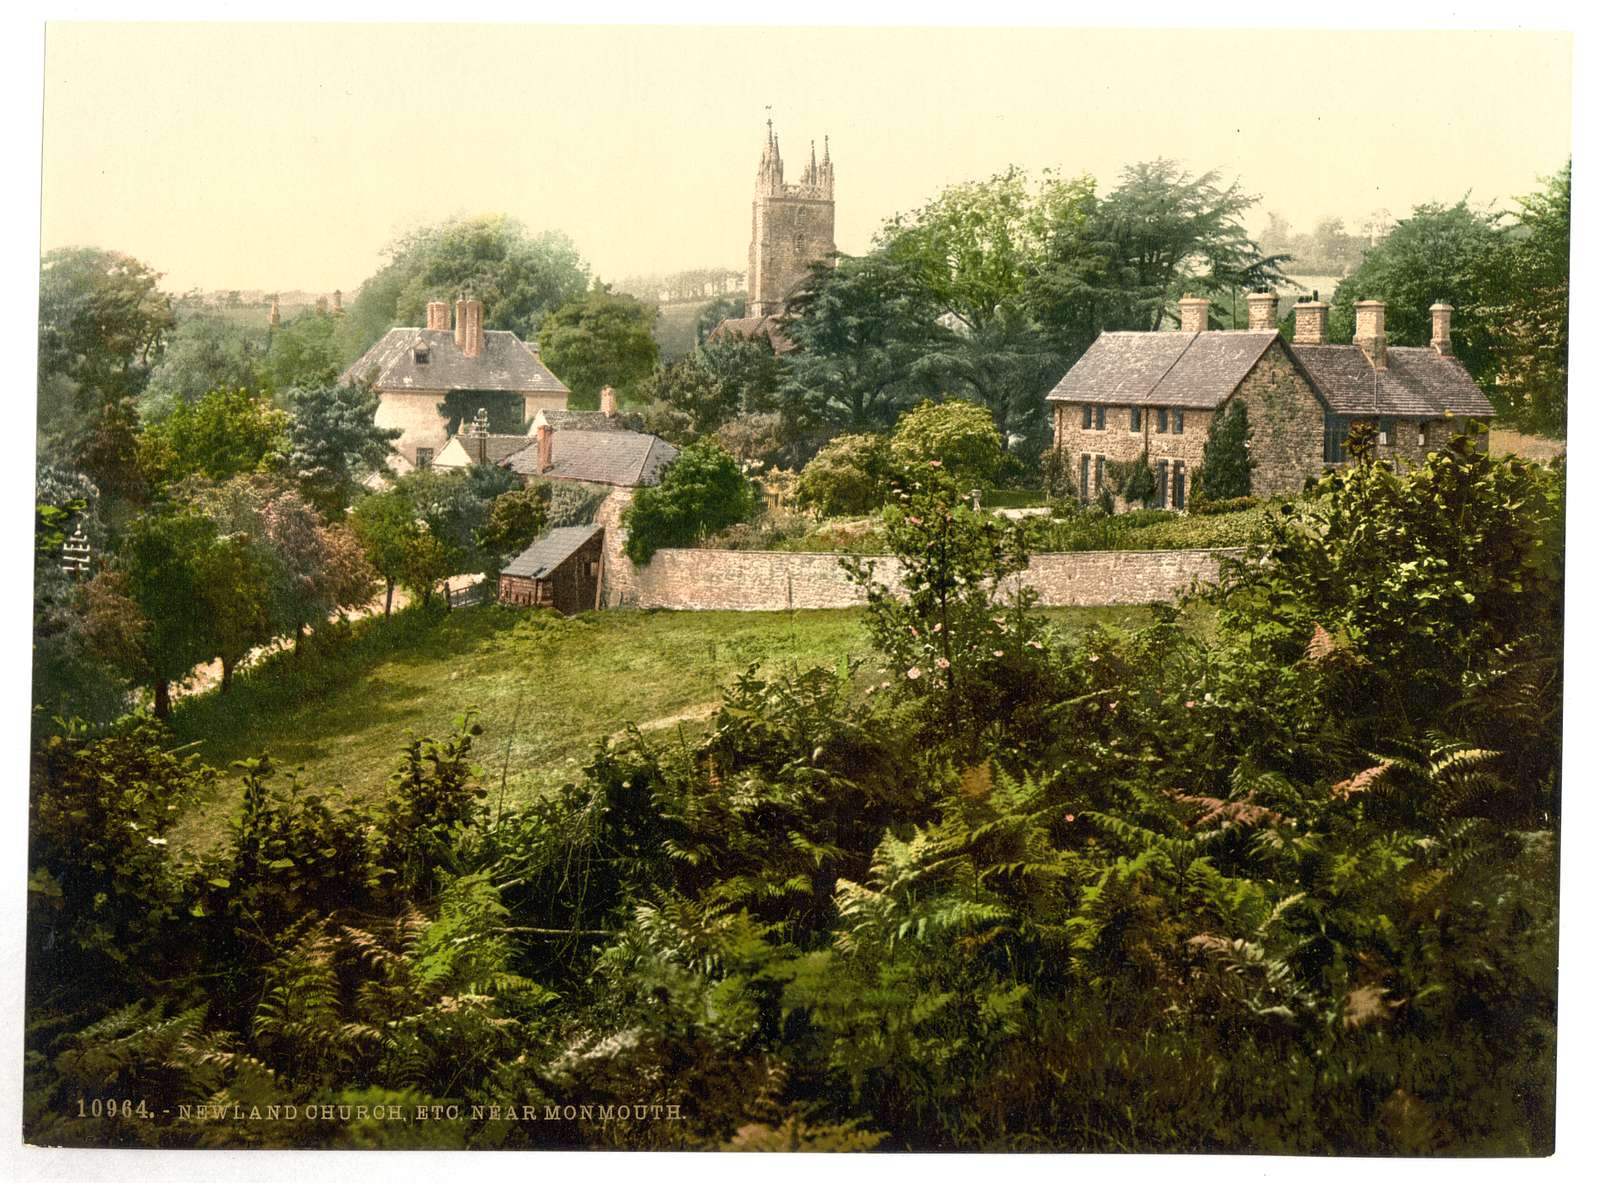 [Vicinity of Newland Church, Monmouth, Wales]